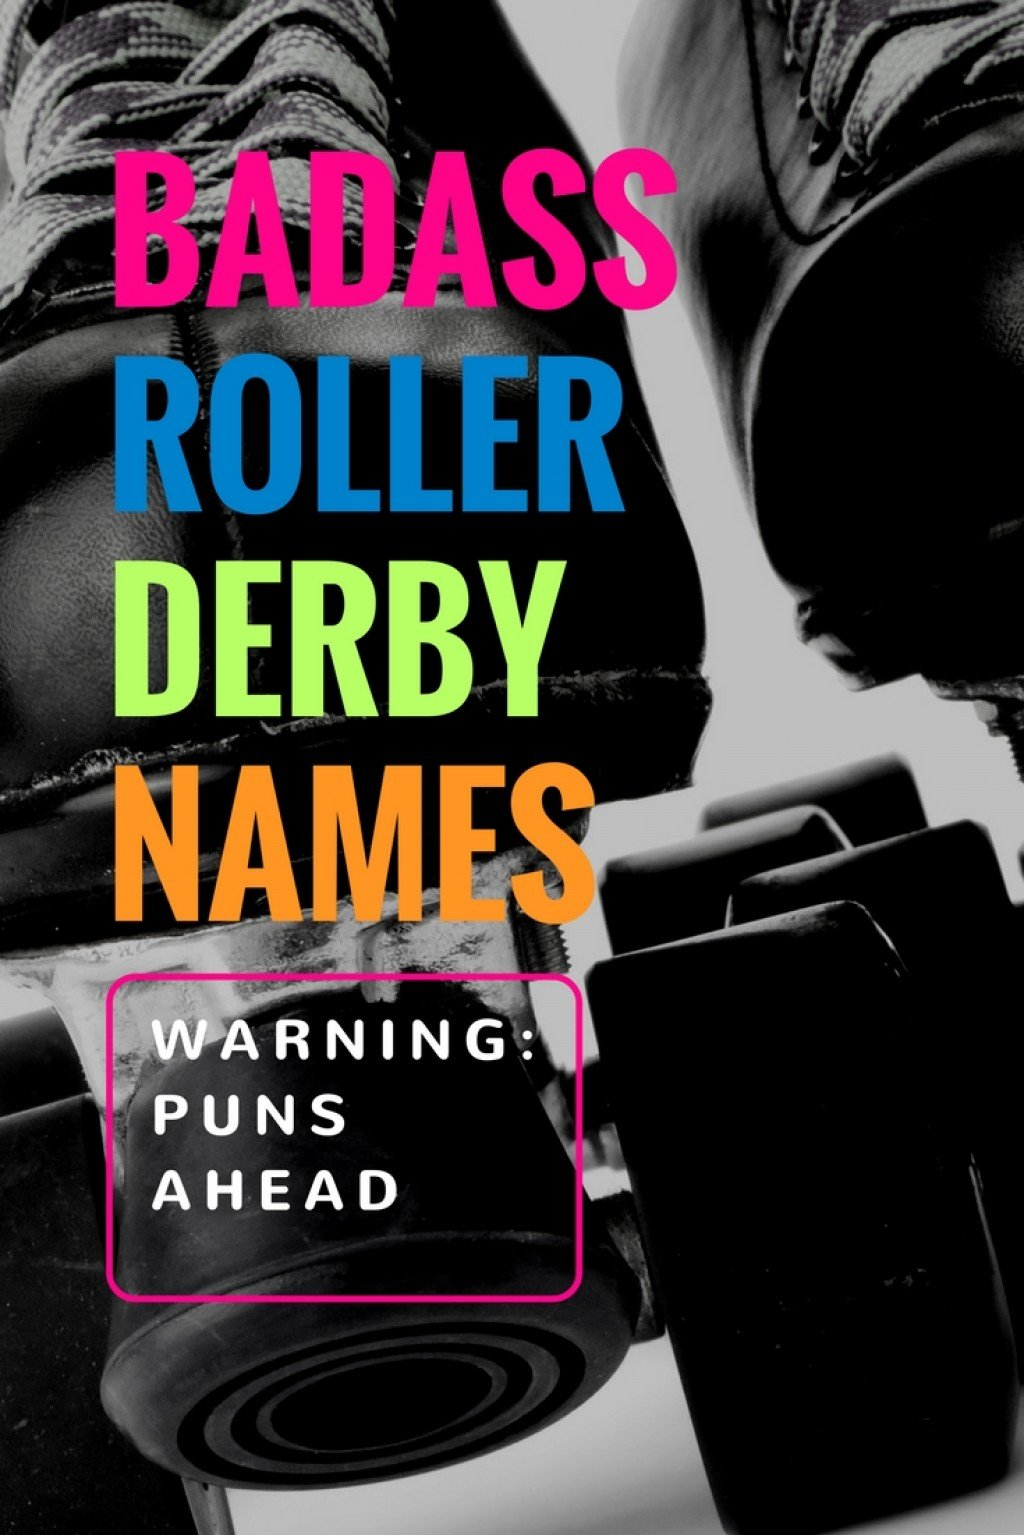 100+ badass roller derby names & team names | howtheyplay